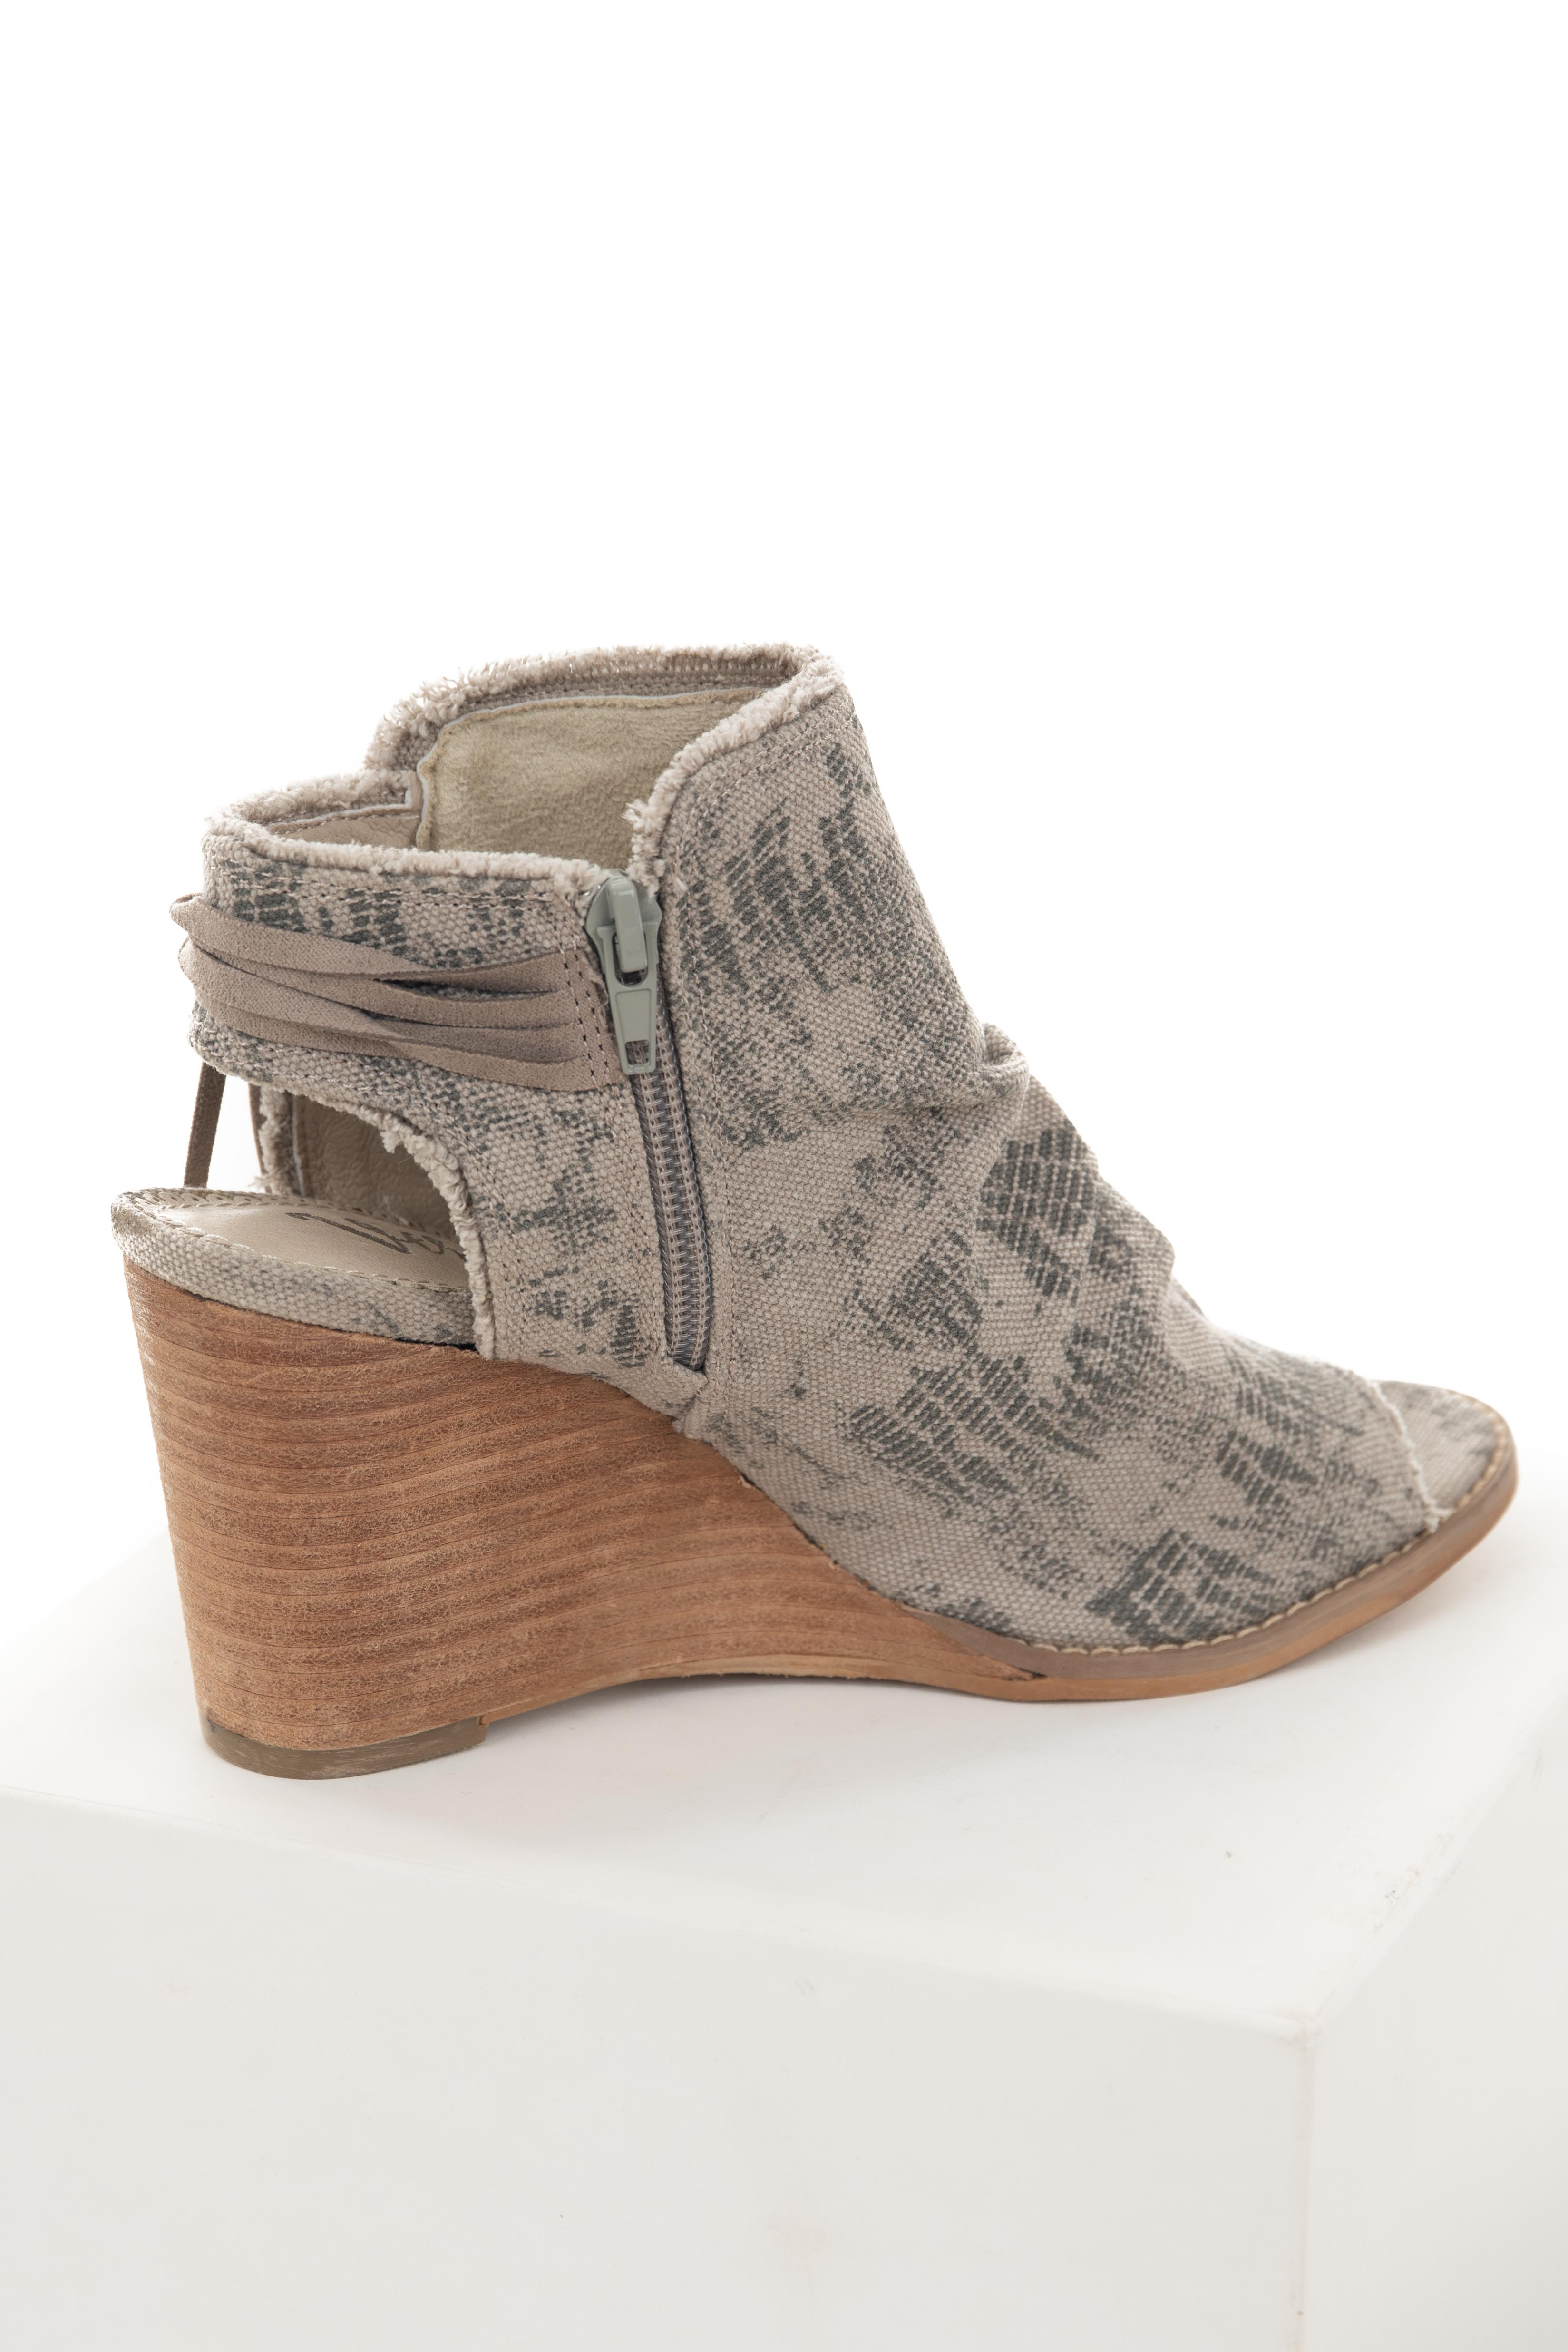 Oatmeal Printed Slouchy Open Toe Wedge Booties